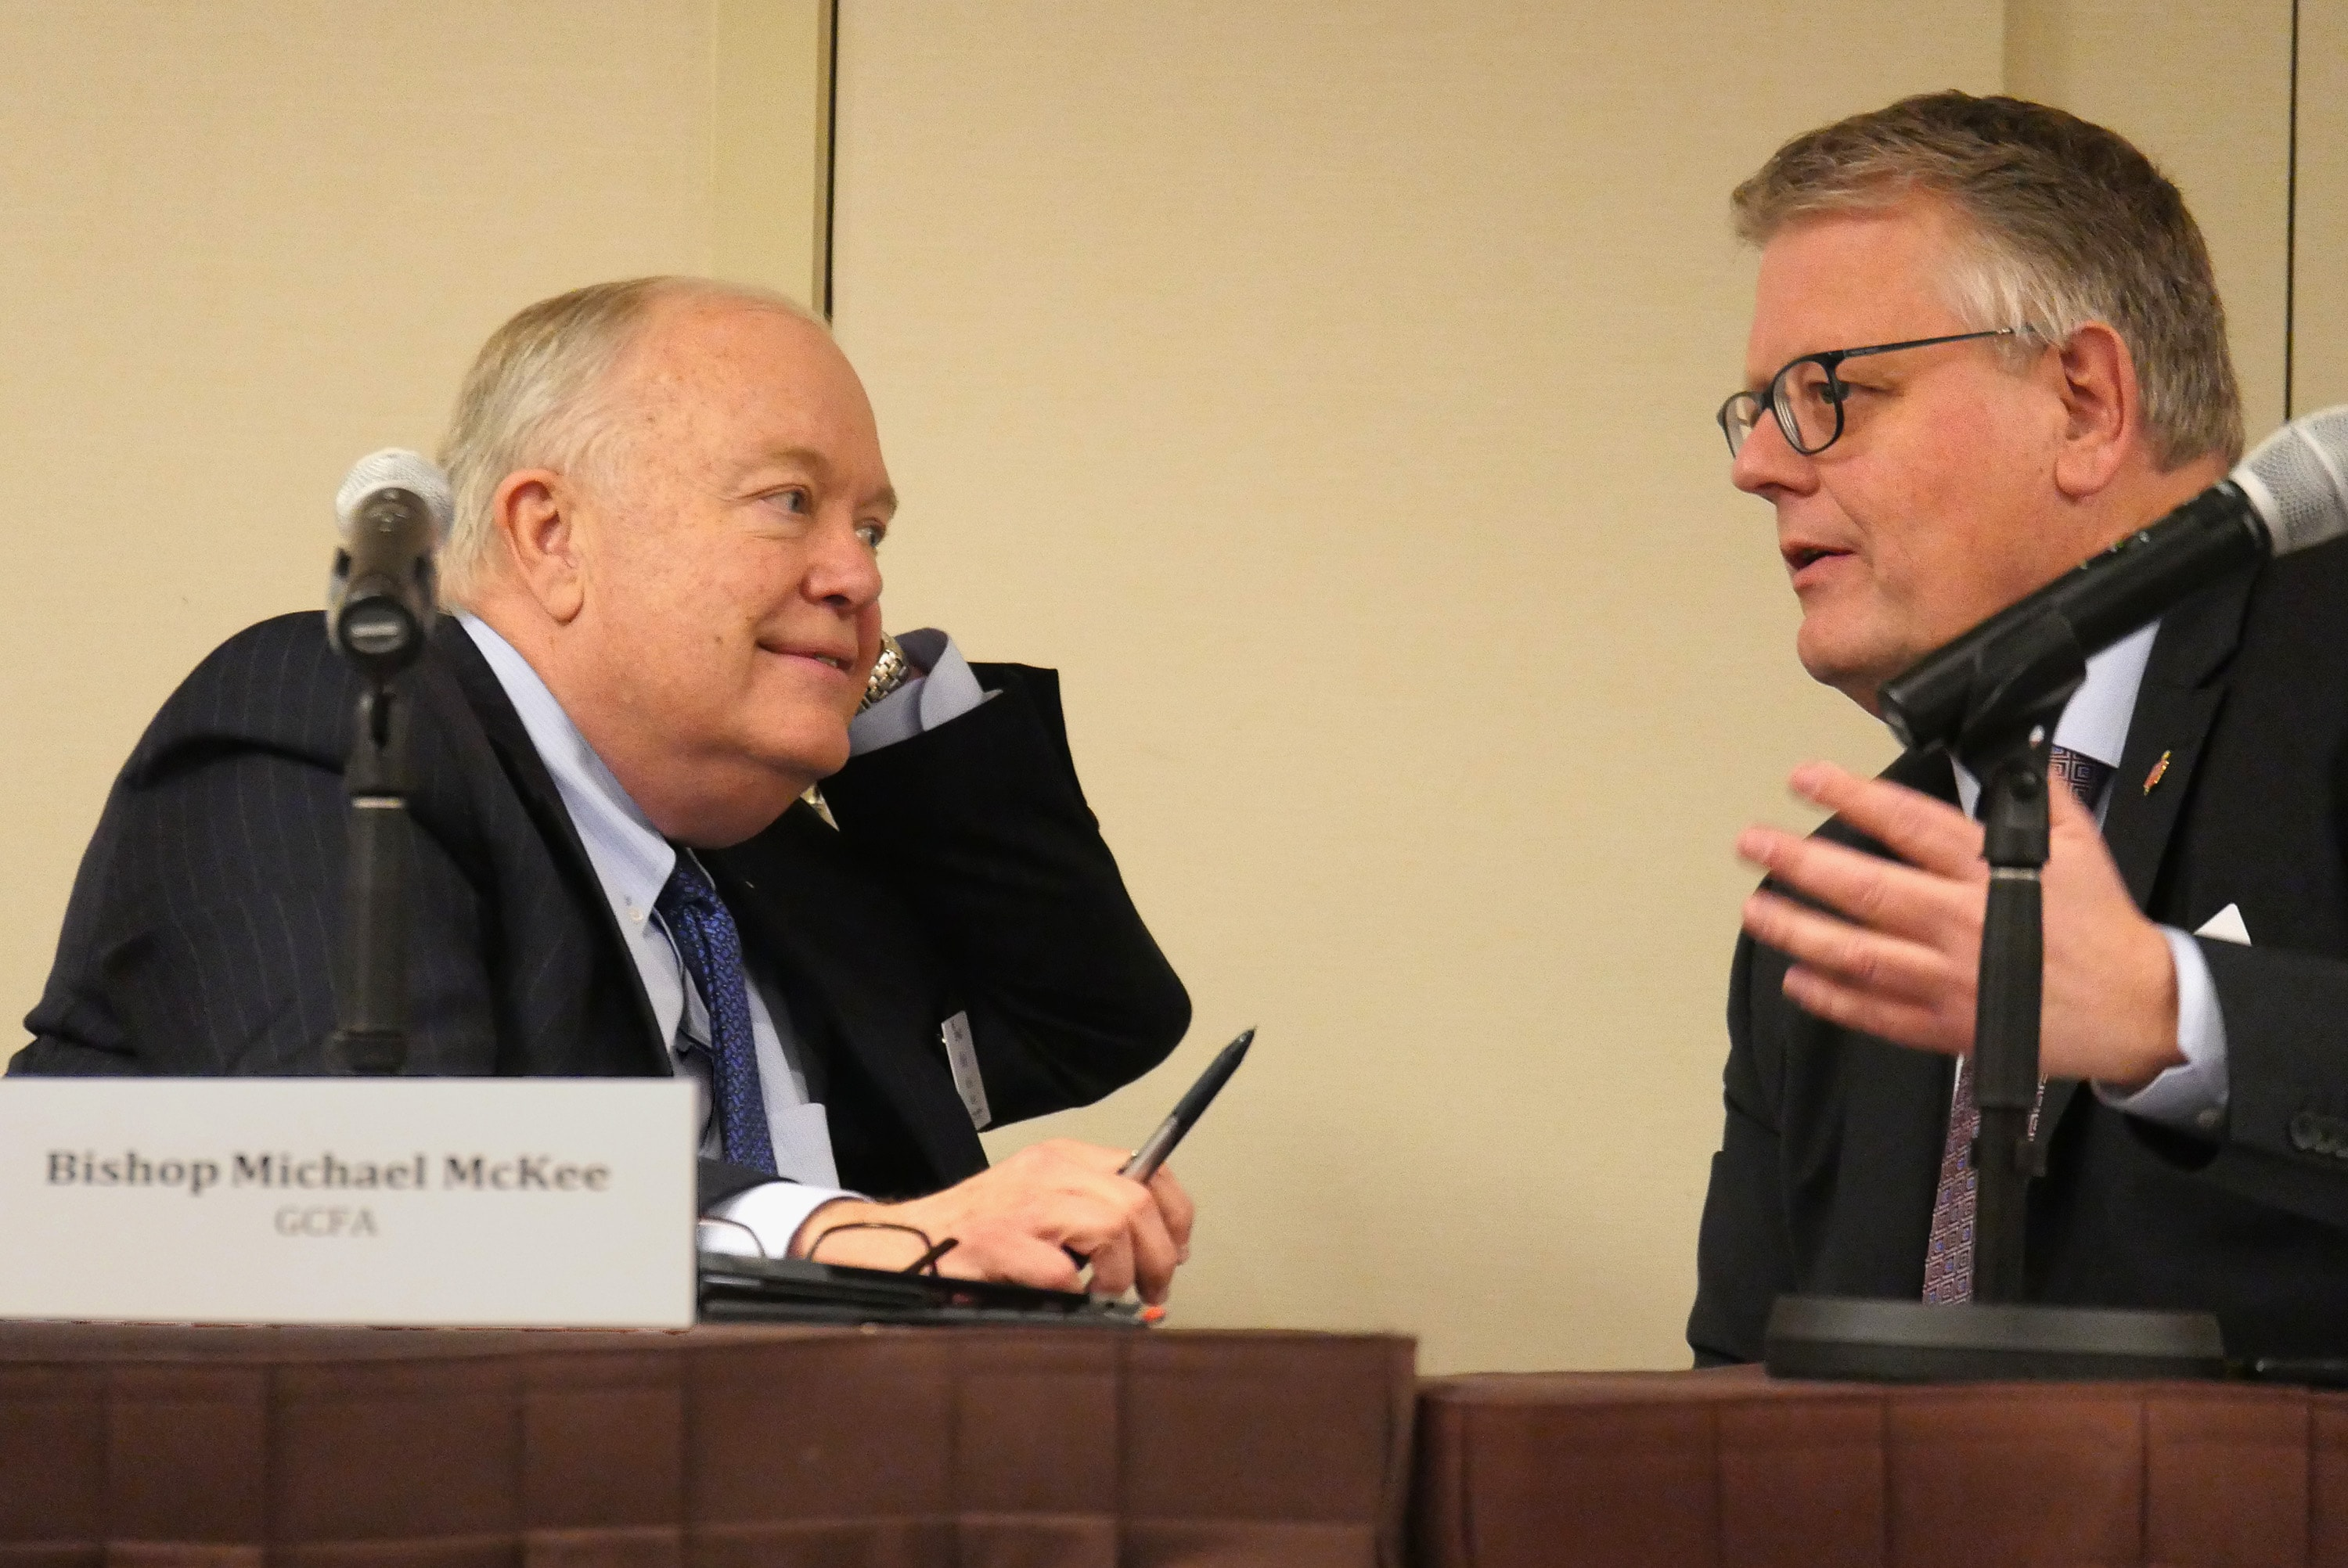 Bishops Mike McKee and Christian Alsted discuss the process for voting on budget proposals during a joint meeting of the General Council on Finance and Administration board and Connectional Table in Nashville, Tenn. McKee is president of the finance agency board and Alsted is chair of the Connectional Table. Photo by Heather Hahn, UMNS.